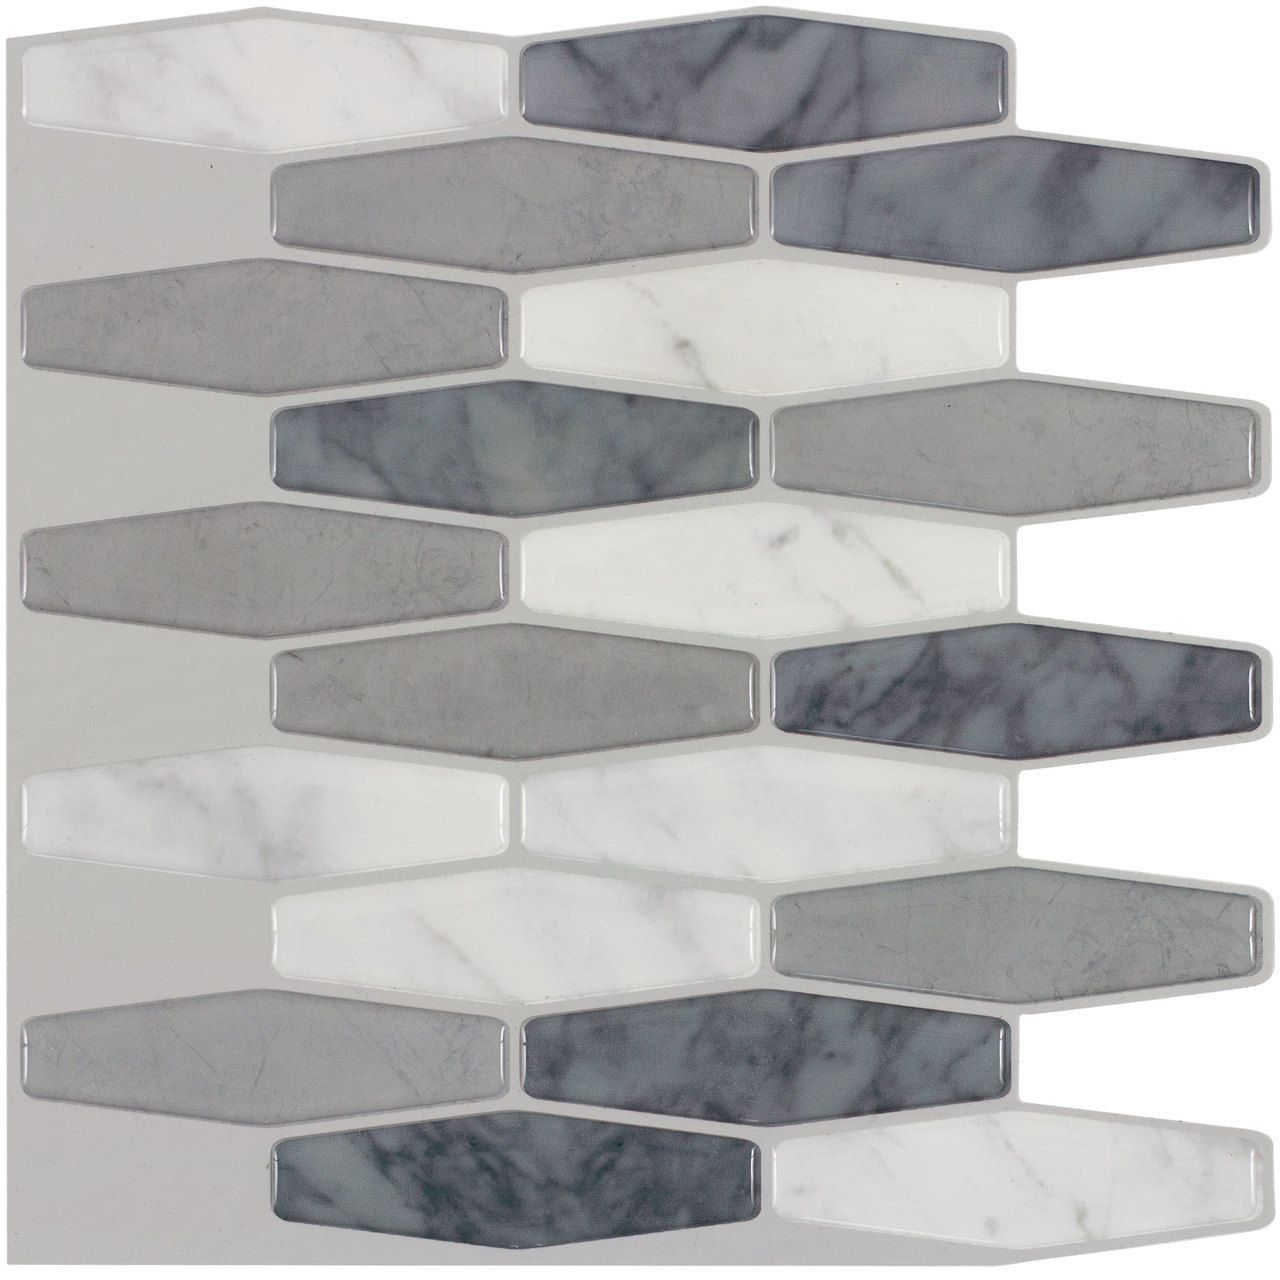 White Marble Peel & Stick Wall Tile | Pinterest | White marble ...